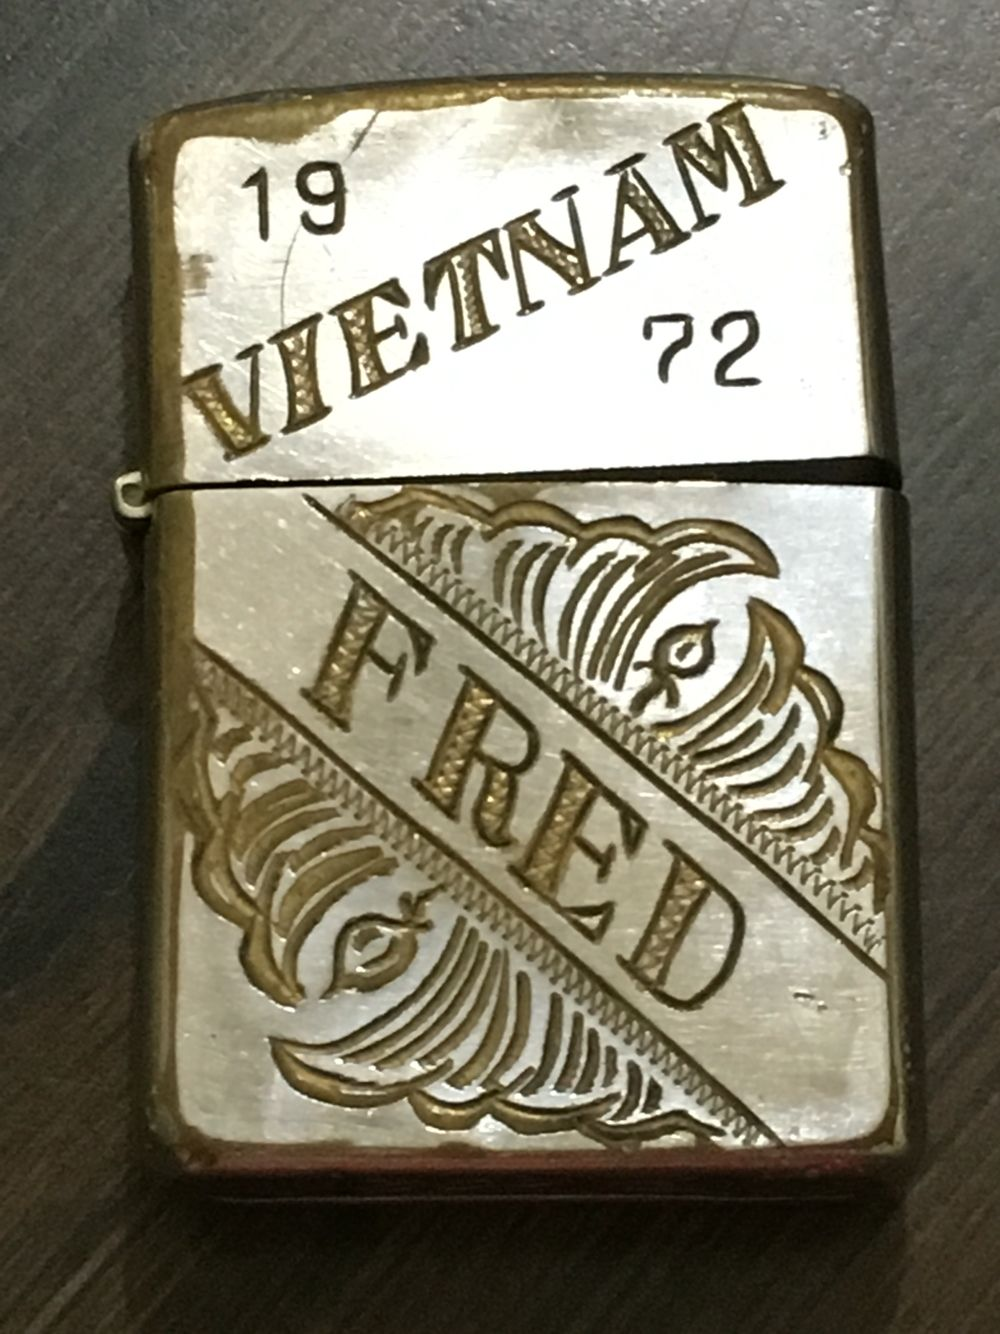 Uncle Fred S Engraved Zippo Lighter From Vietnam 1972 Usmc Rip Vietnam War Photos Engraved Zippo Vietnam War